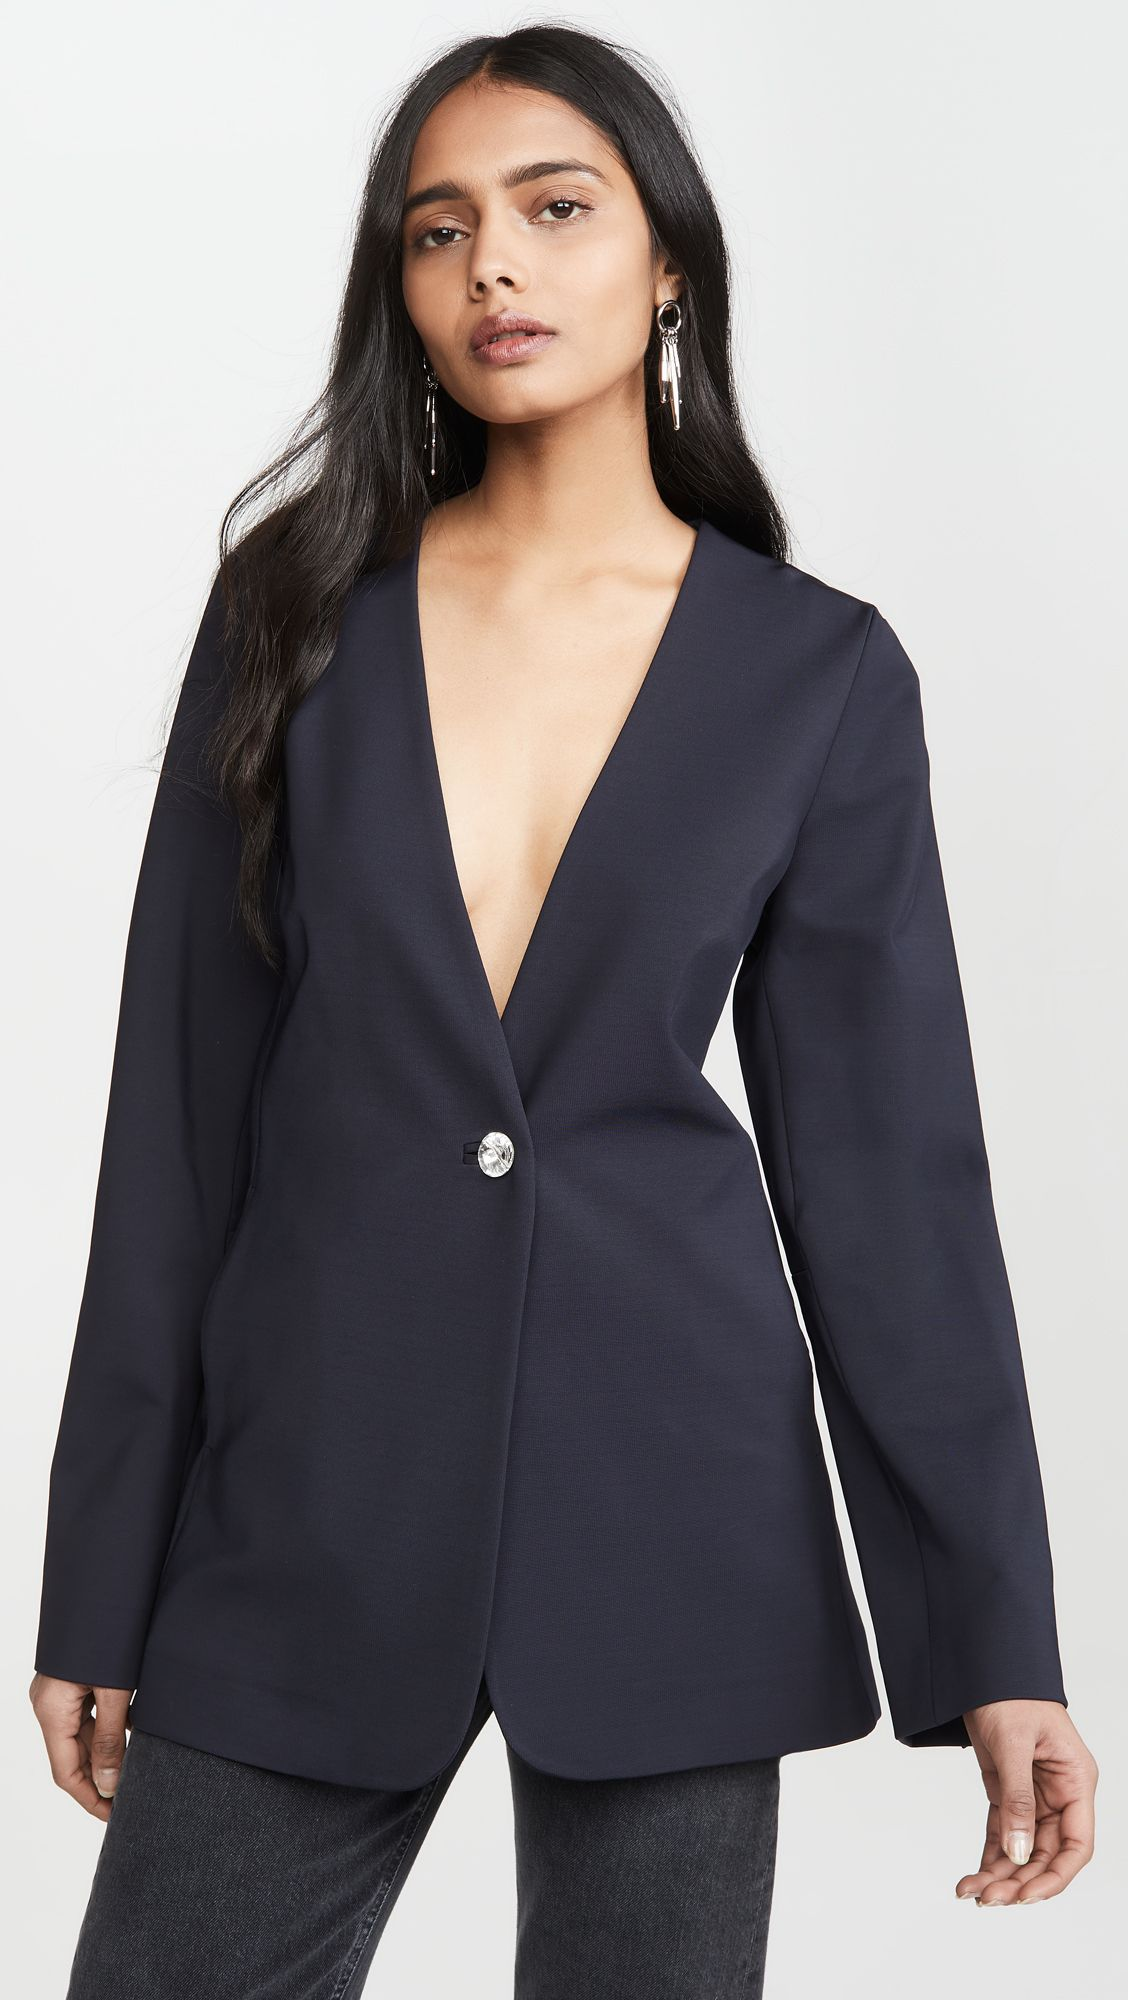 11 New-to-Me Brands I'm Adding to My Cart for Spring 12